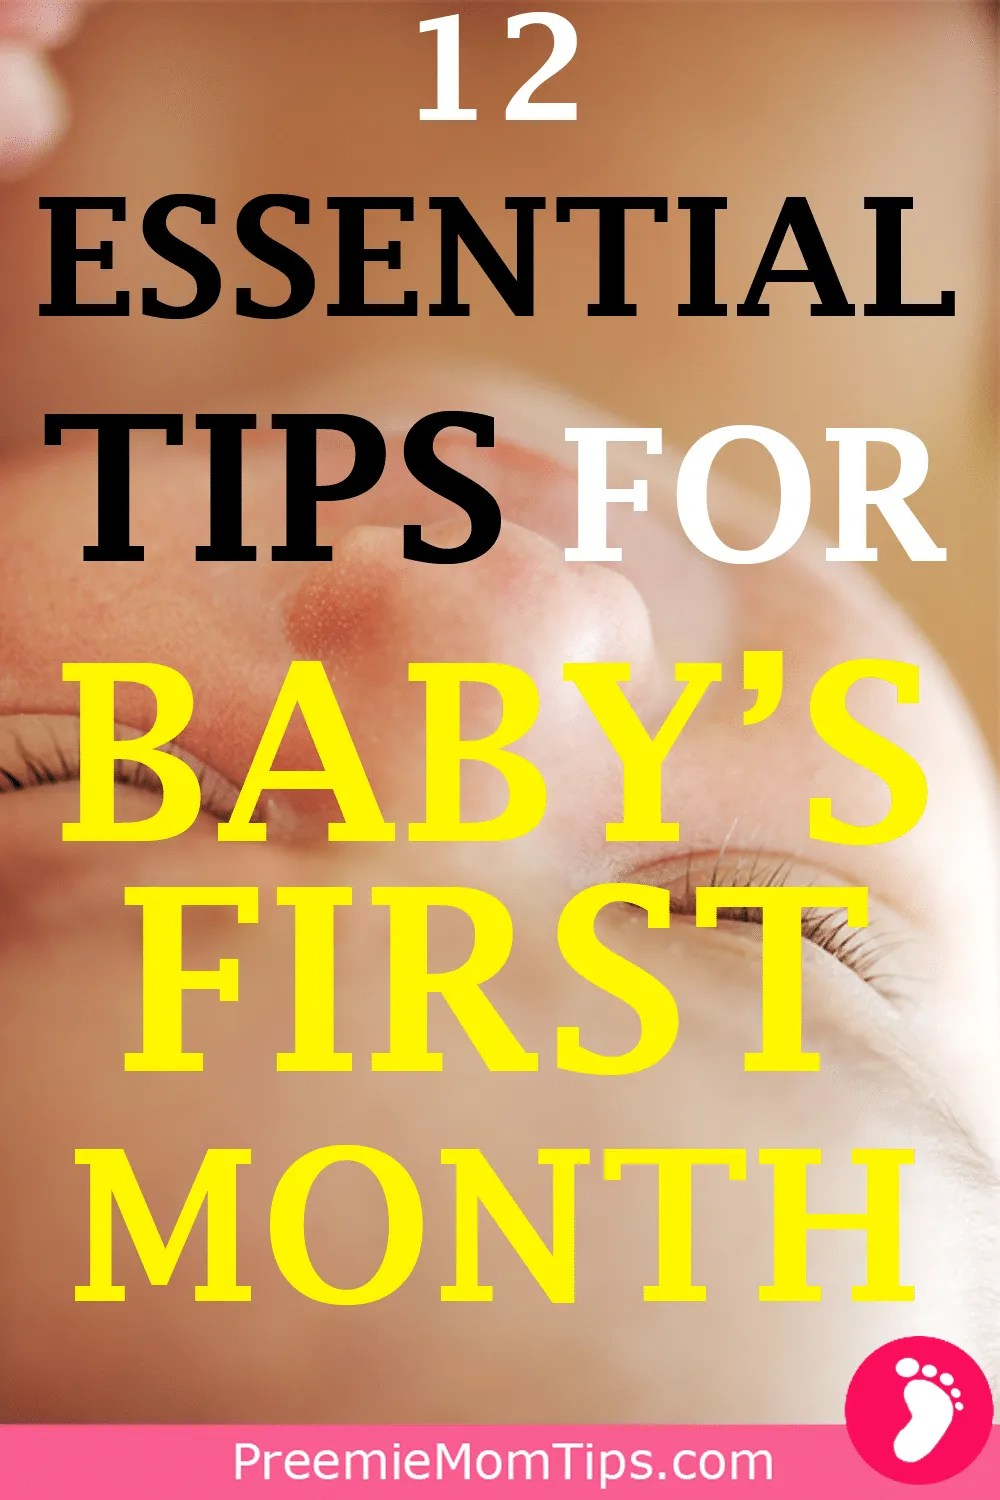 Are you an anxious and overwhelmed new parent? Check out these 12 ESSENTIAL NEWBORN BABY TIPS that will help you and your baby thrive the first month home!